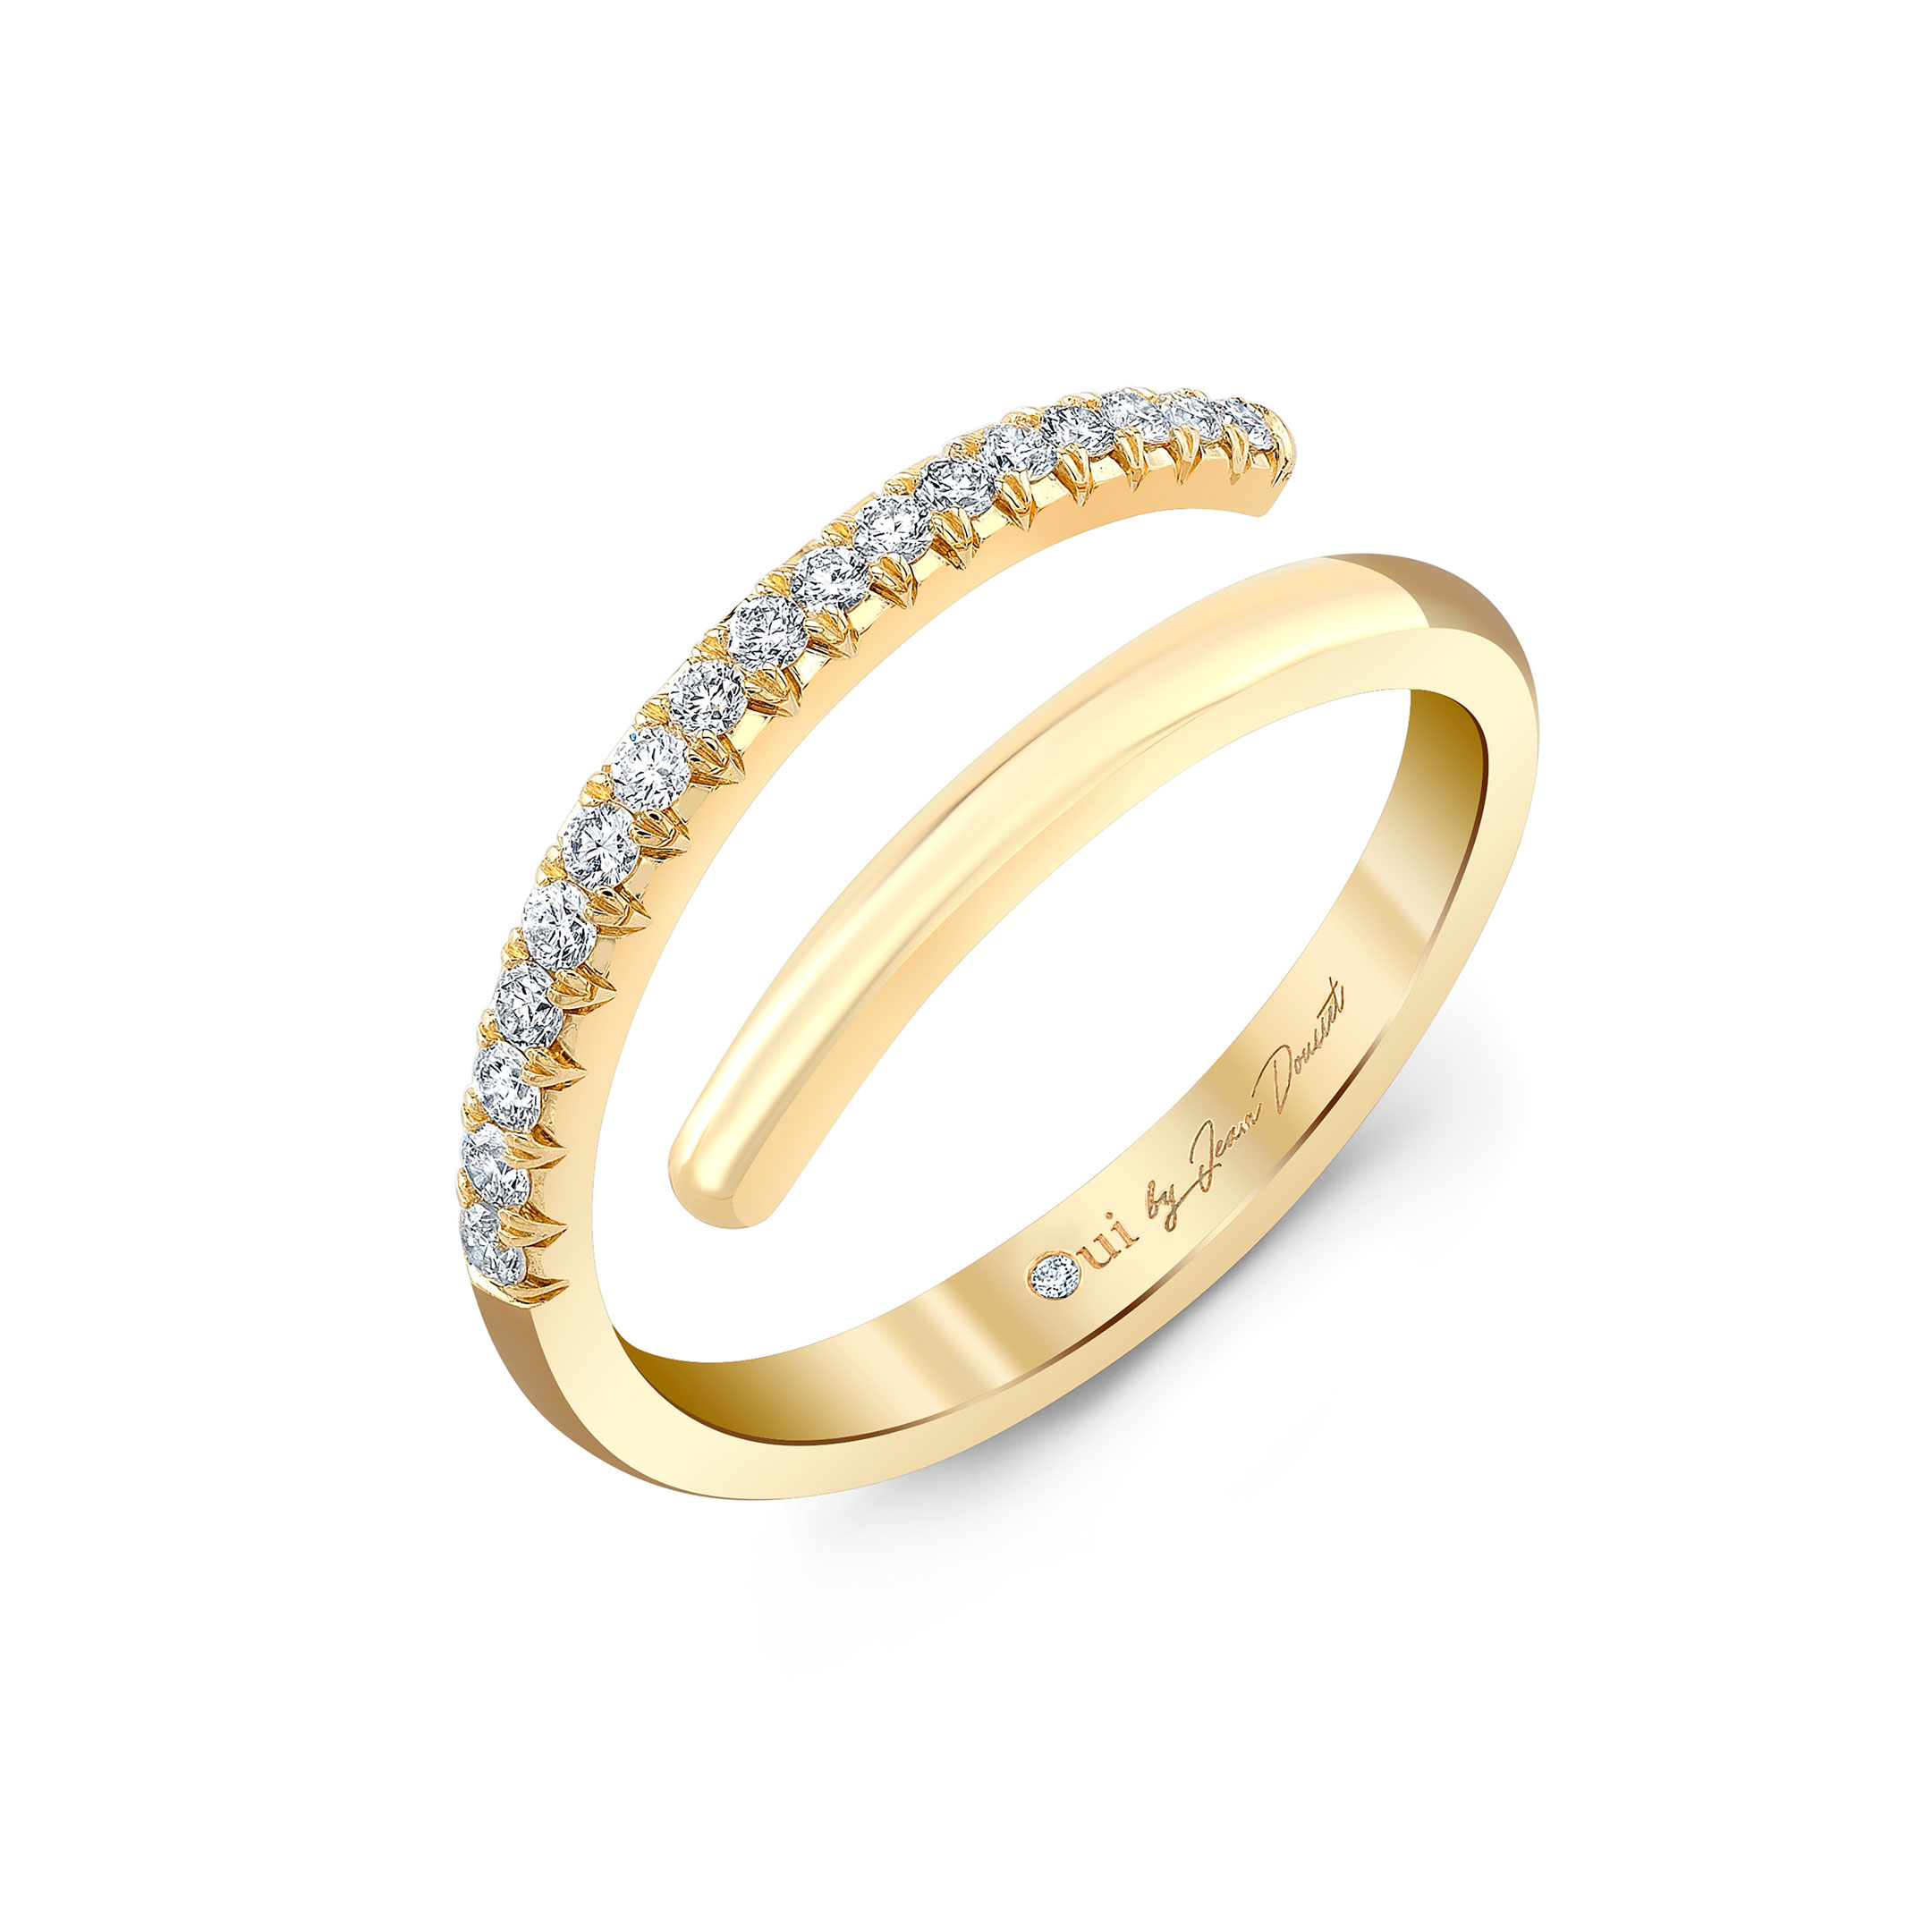 Half Diamond Pavé Wrap Ring in 18k Yellow Gold Profile View by Oui by Jean Dousset